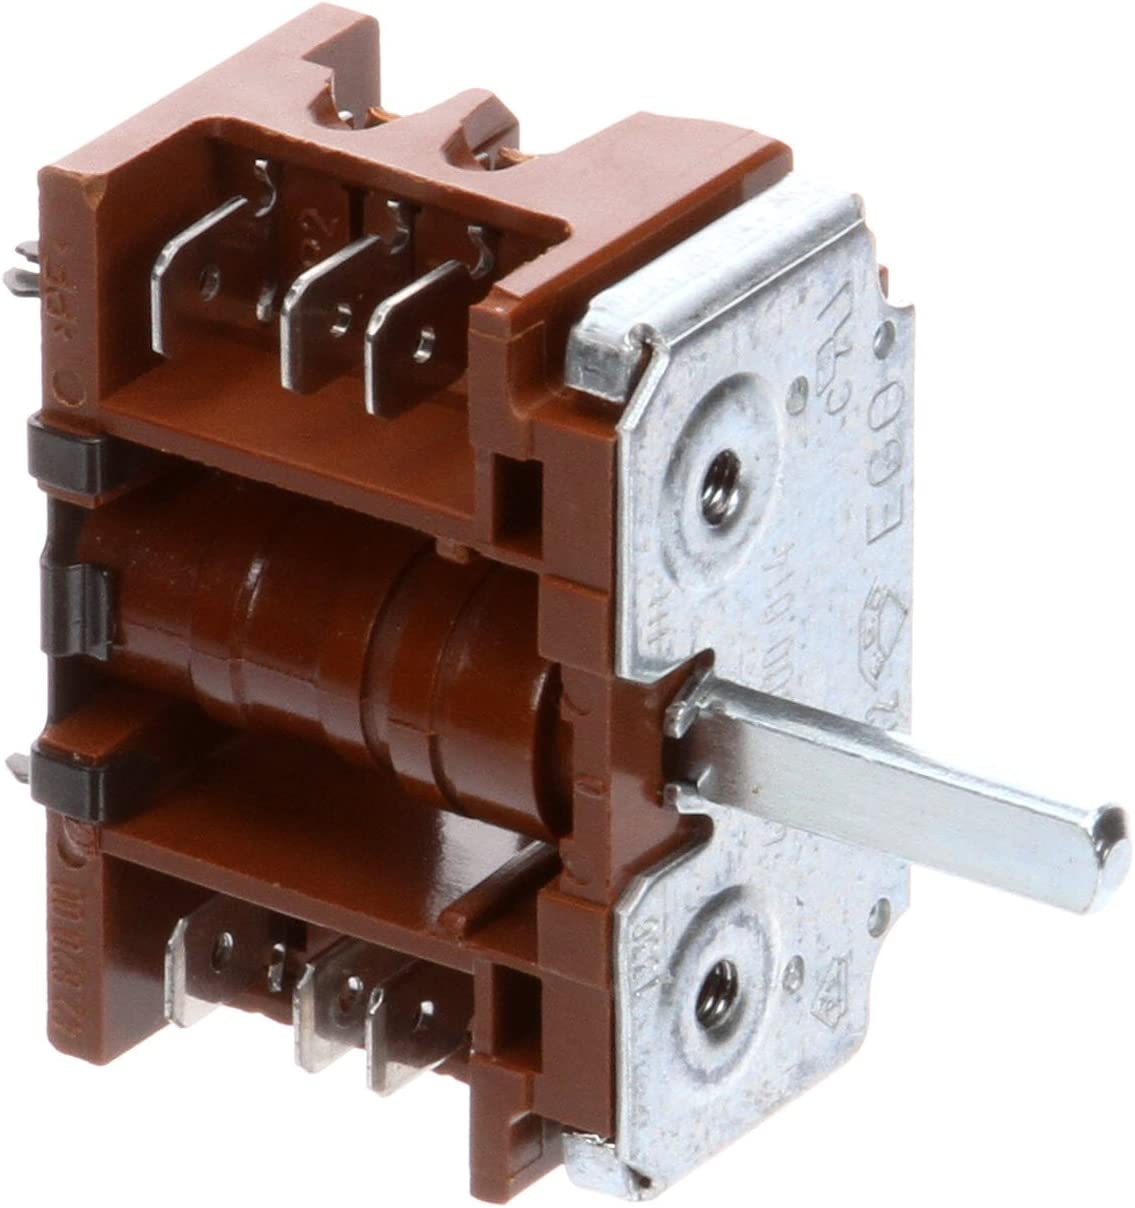 Moffat M233887 On/Off Rotary Switch